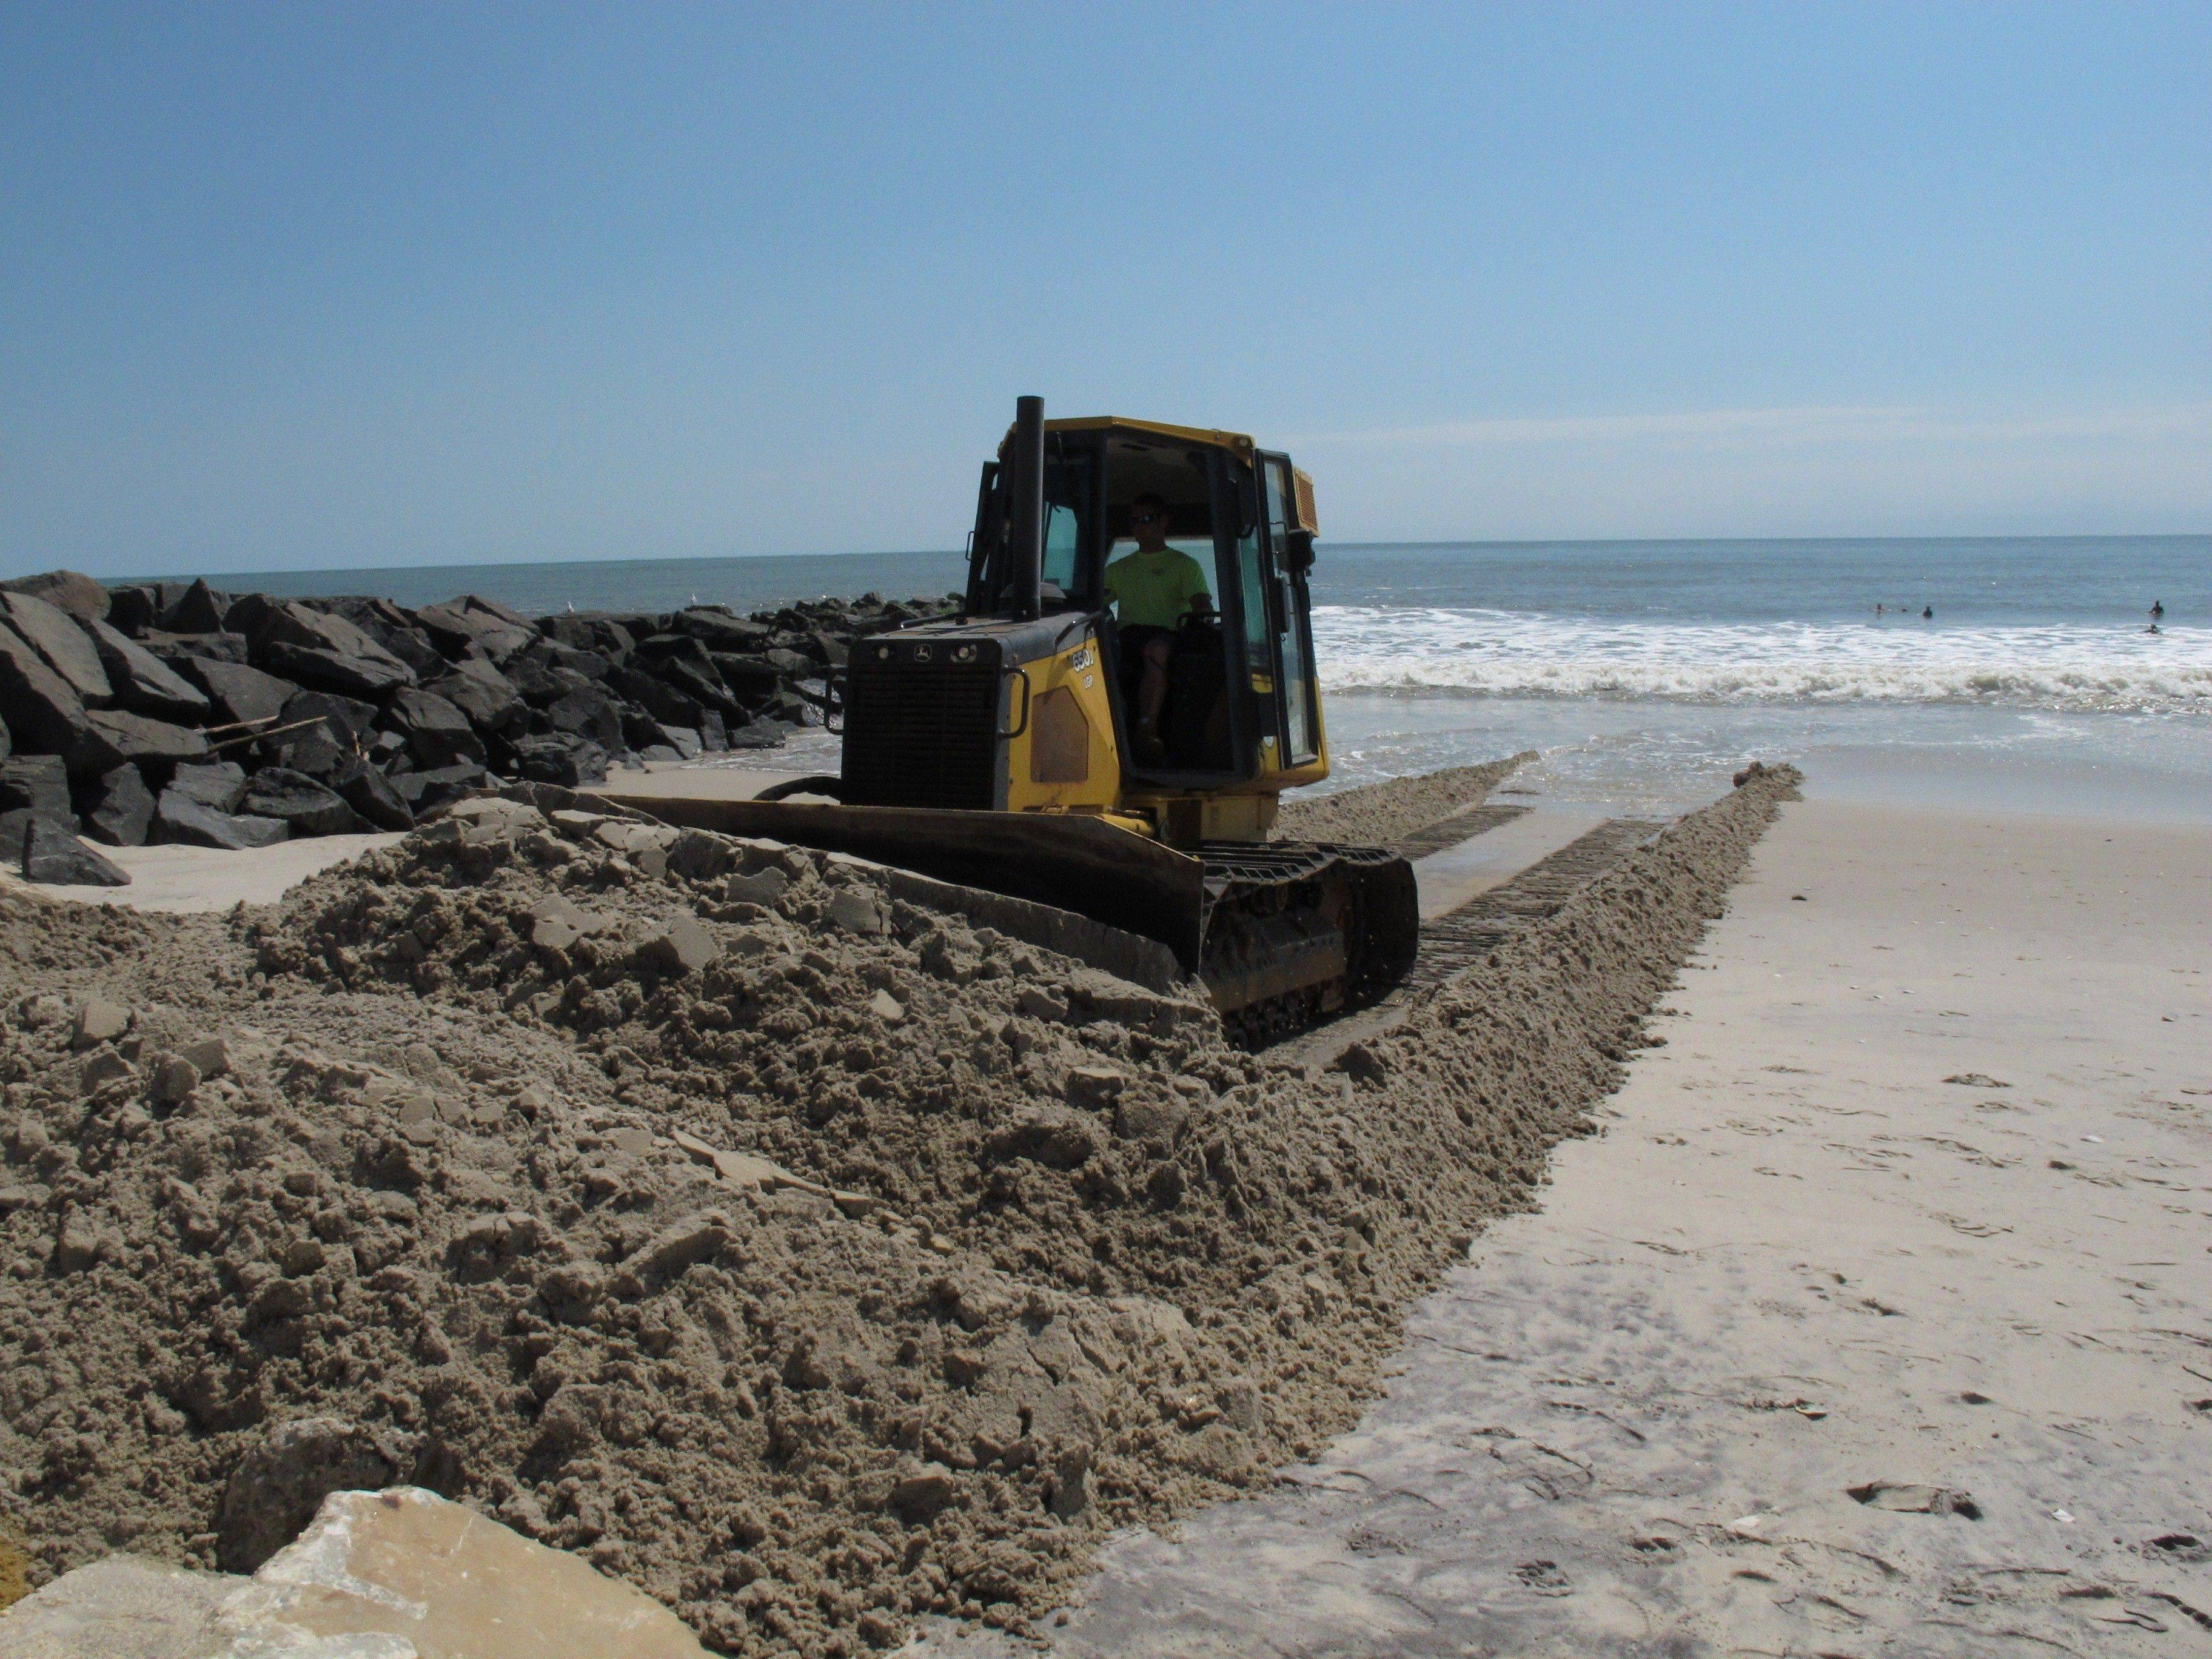 A worker uses a bulldozer to push sand away from the ocean toward badly eroded dunes in the Holgate section of Long Beach Township, N.J.